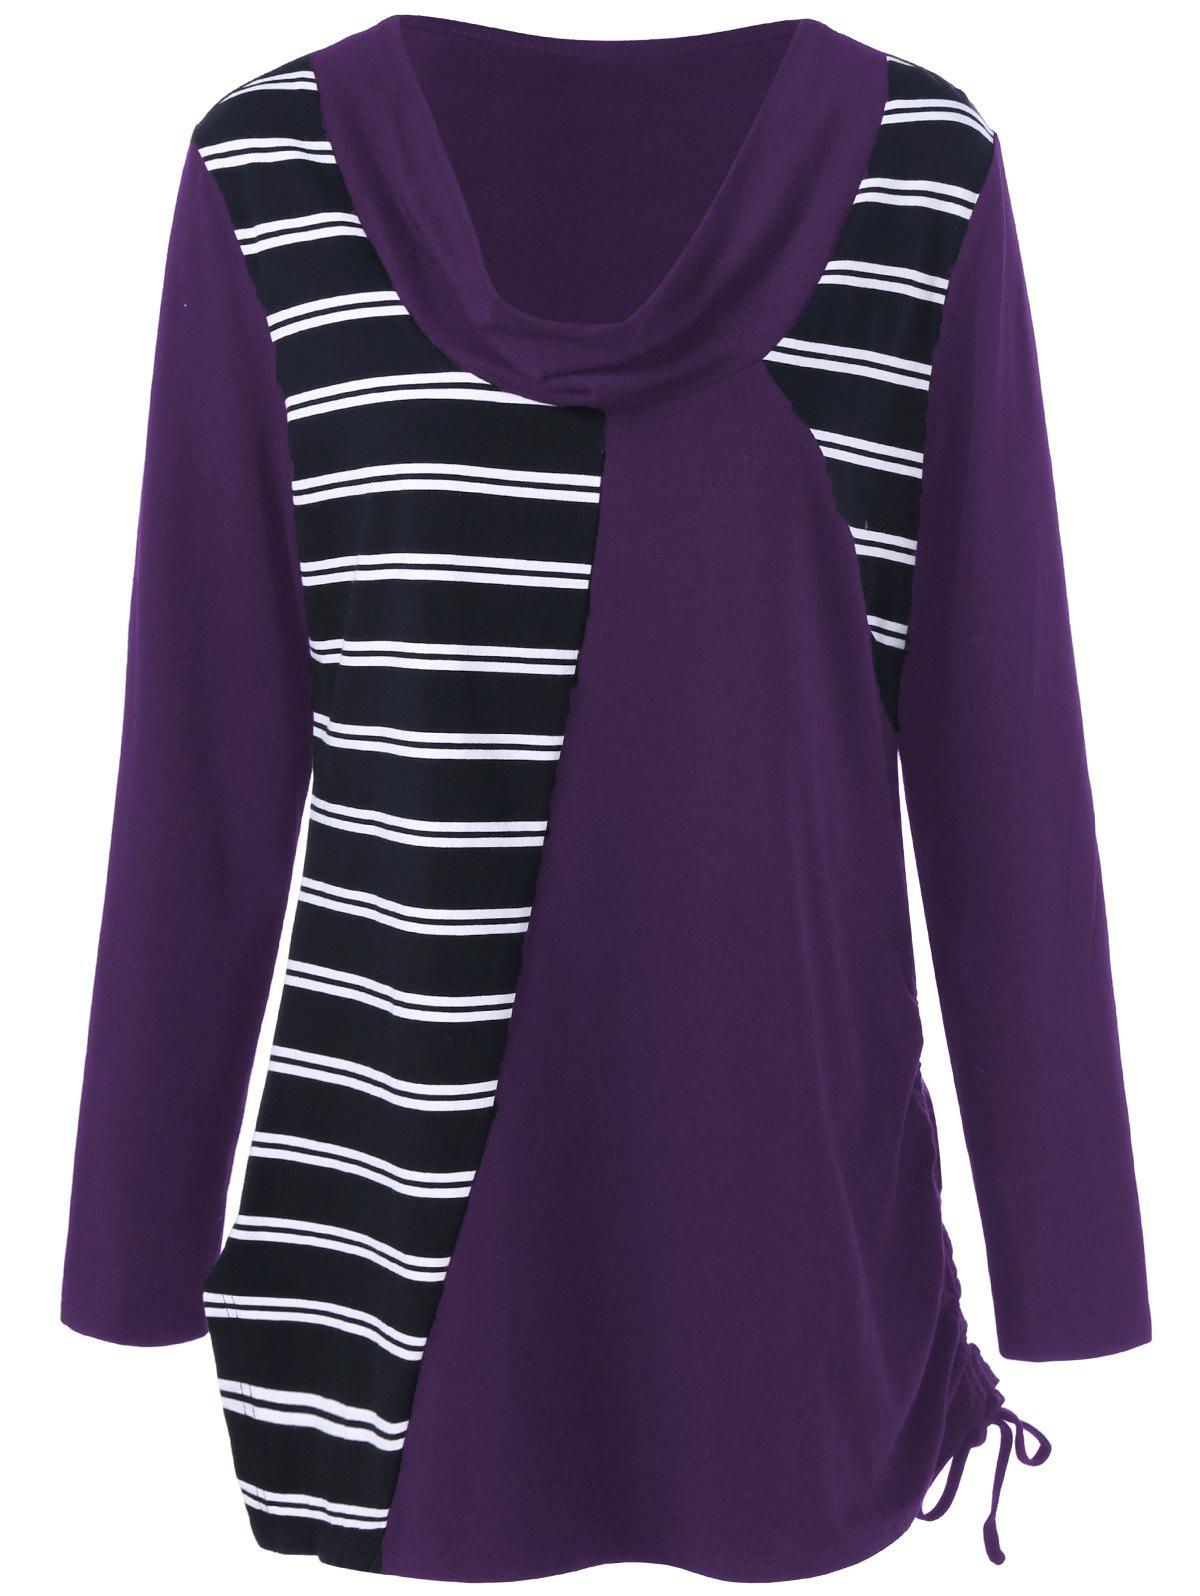 Plus Size Cowl Neck Striped Tunic T-Shirt plus size colorblock cowl neck t shirt